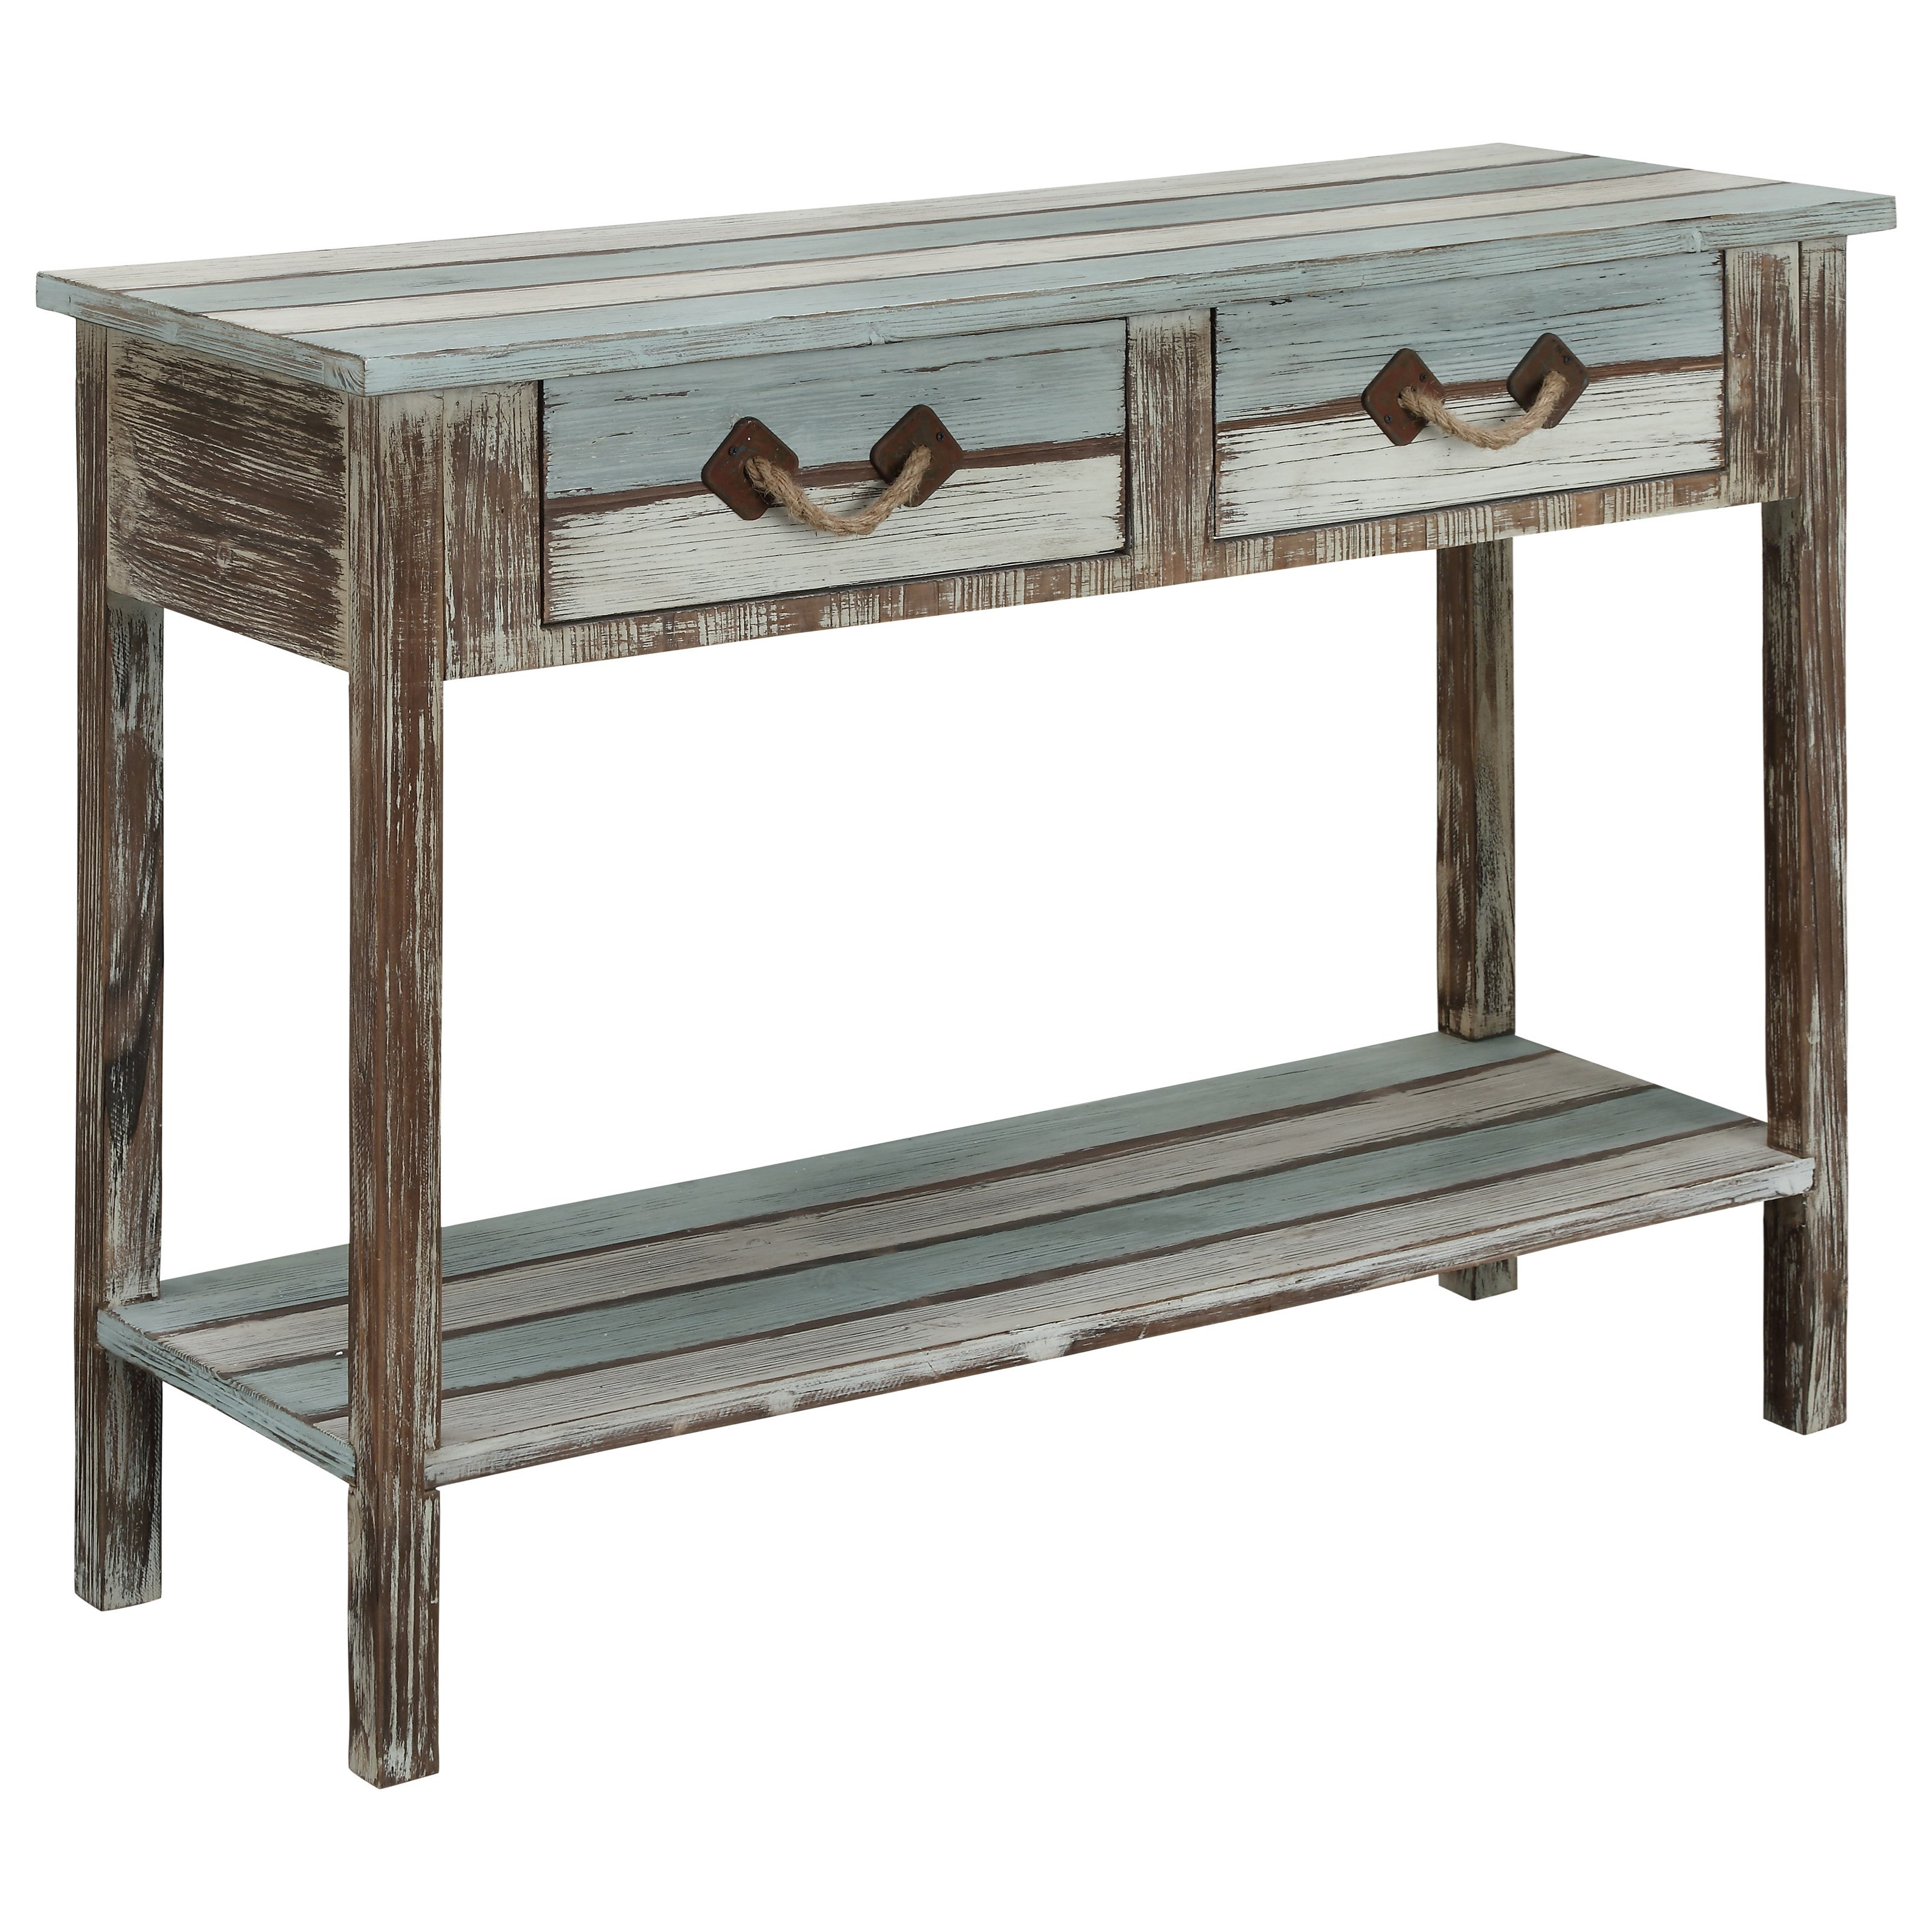 Islander Two Drawer Console Table by Coast to Coast Imports at Bullard Furniture